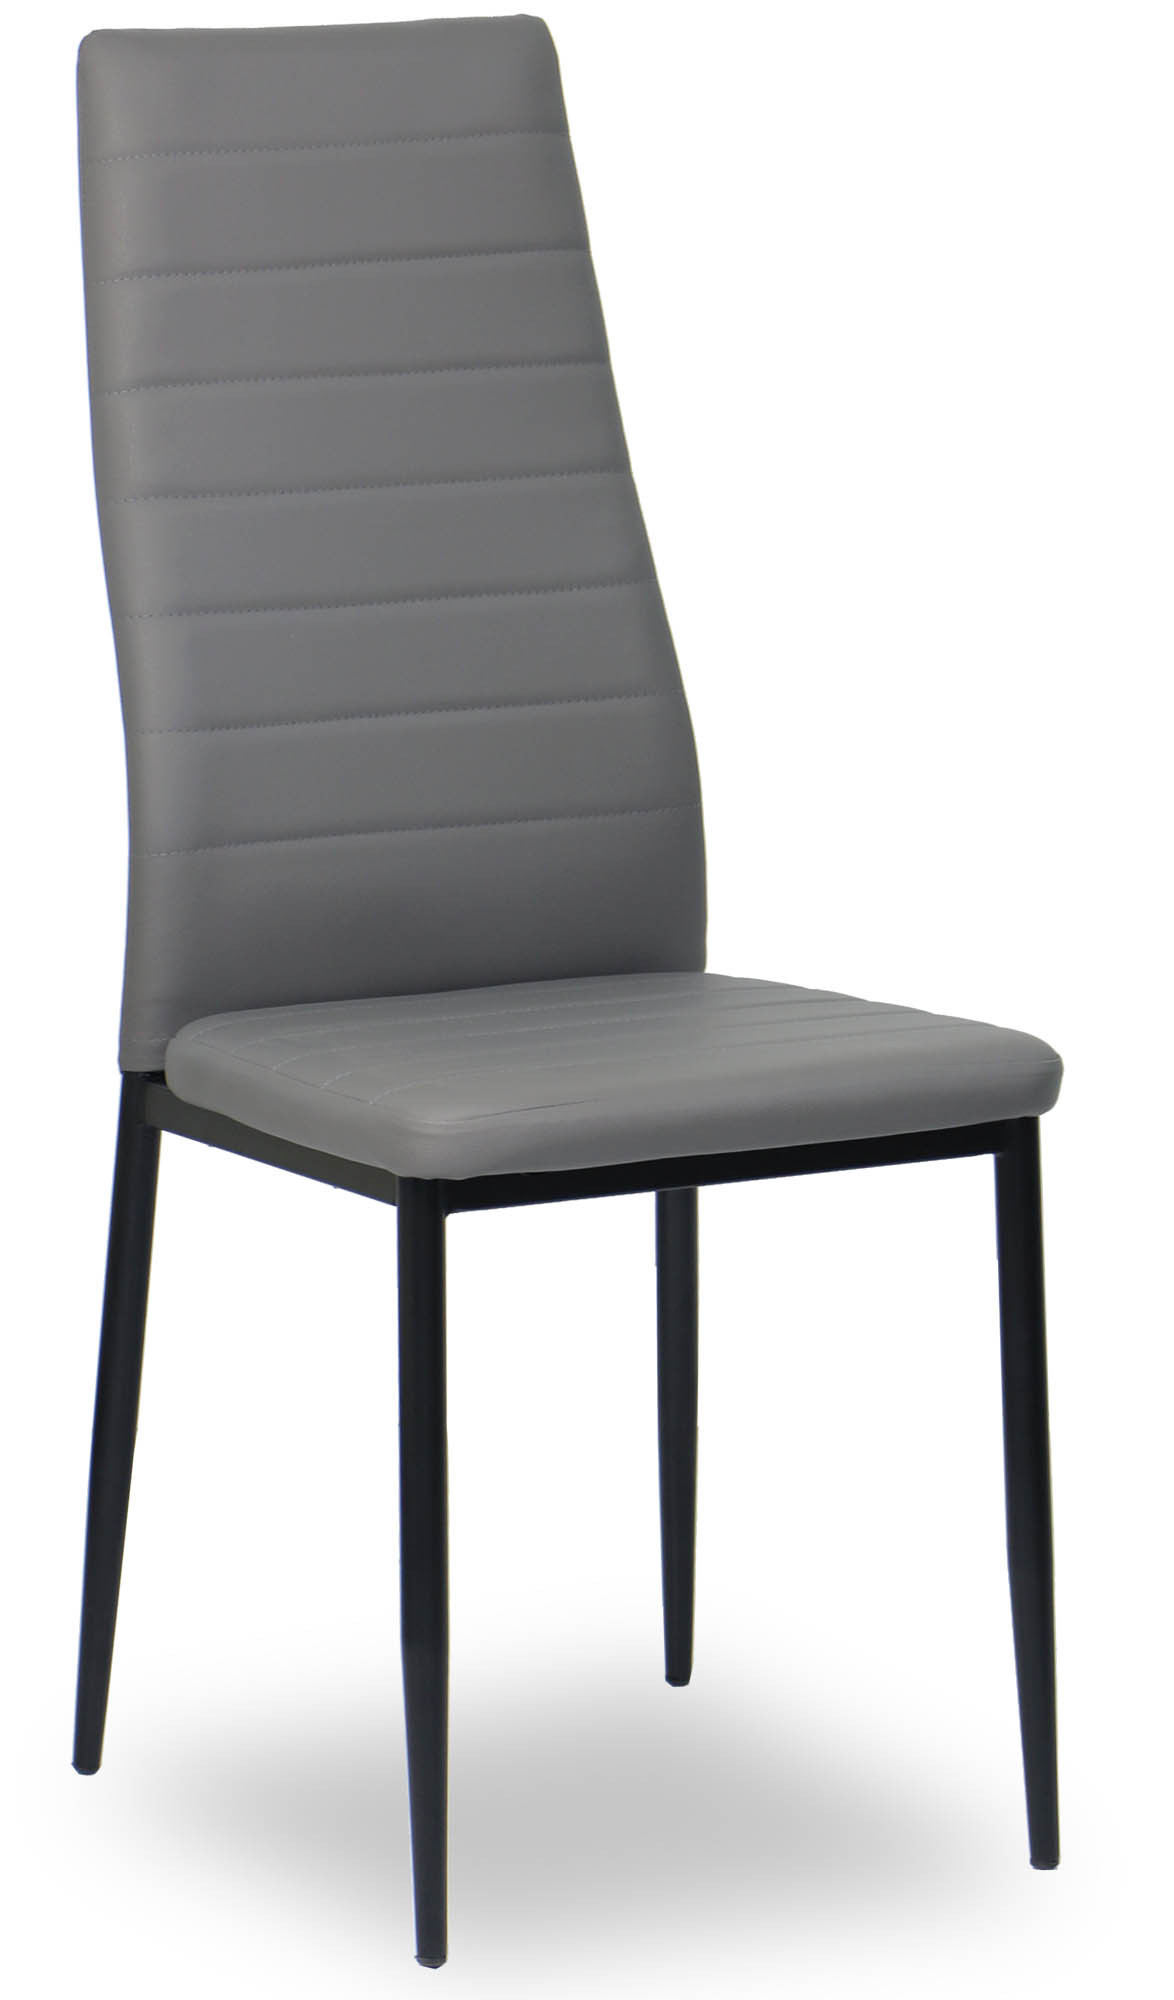 Quinn Dining Chair Grey Furniture amp Home D233cor FortyTwo : quinngrey2 from www.fortytwo.sg size 1174 x 2000 jpeg 81kB